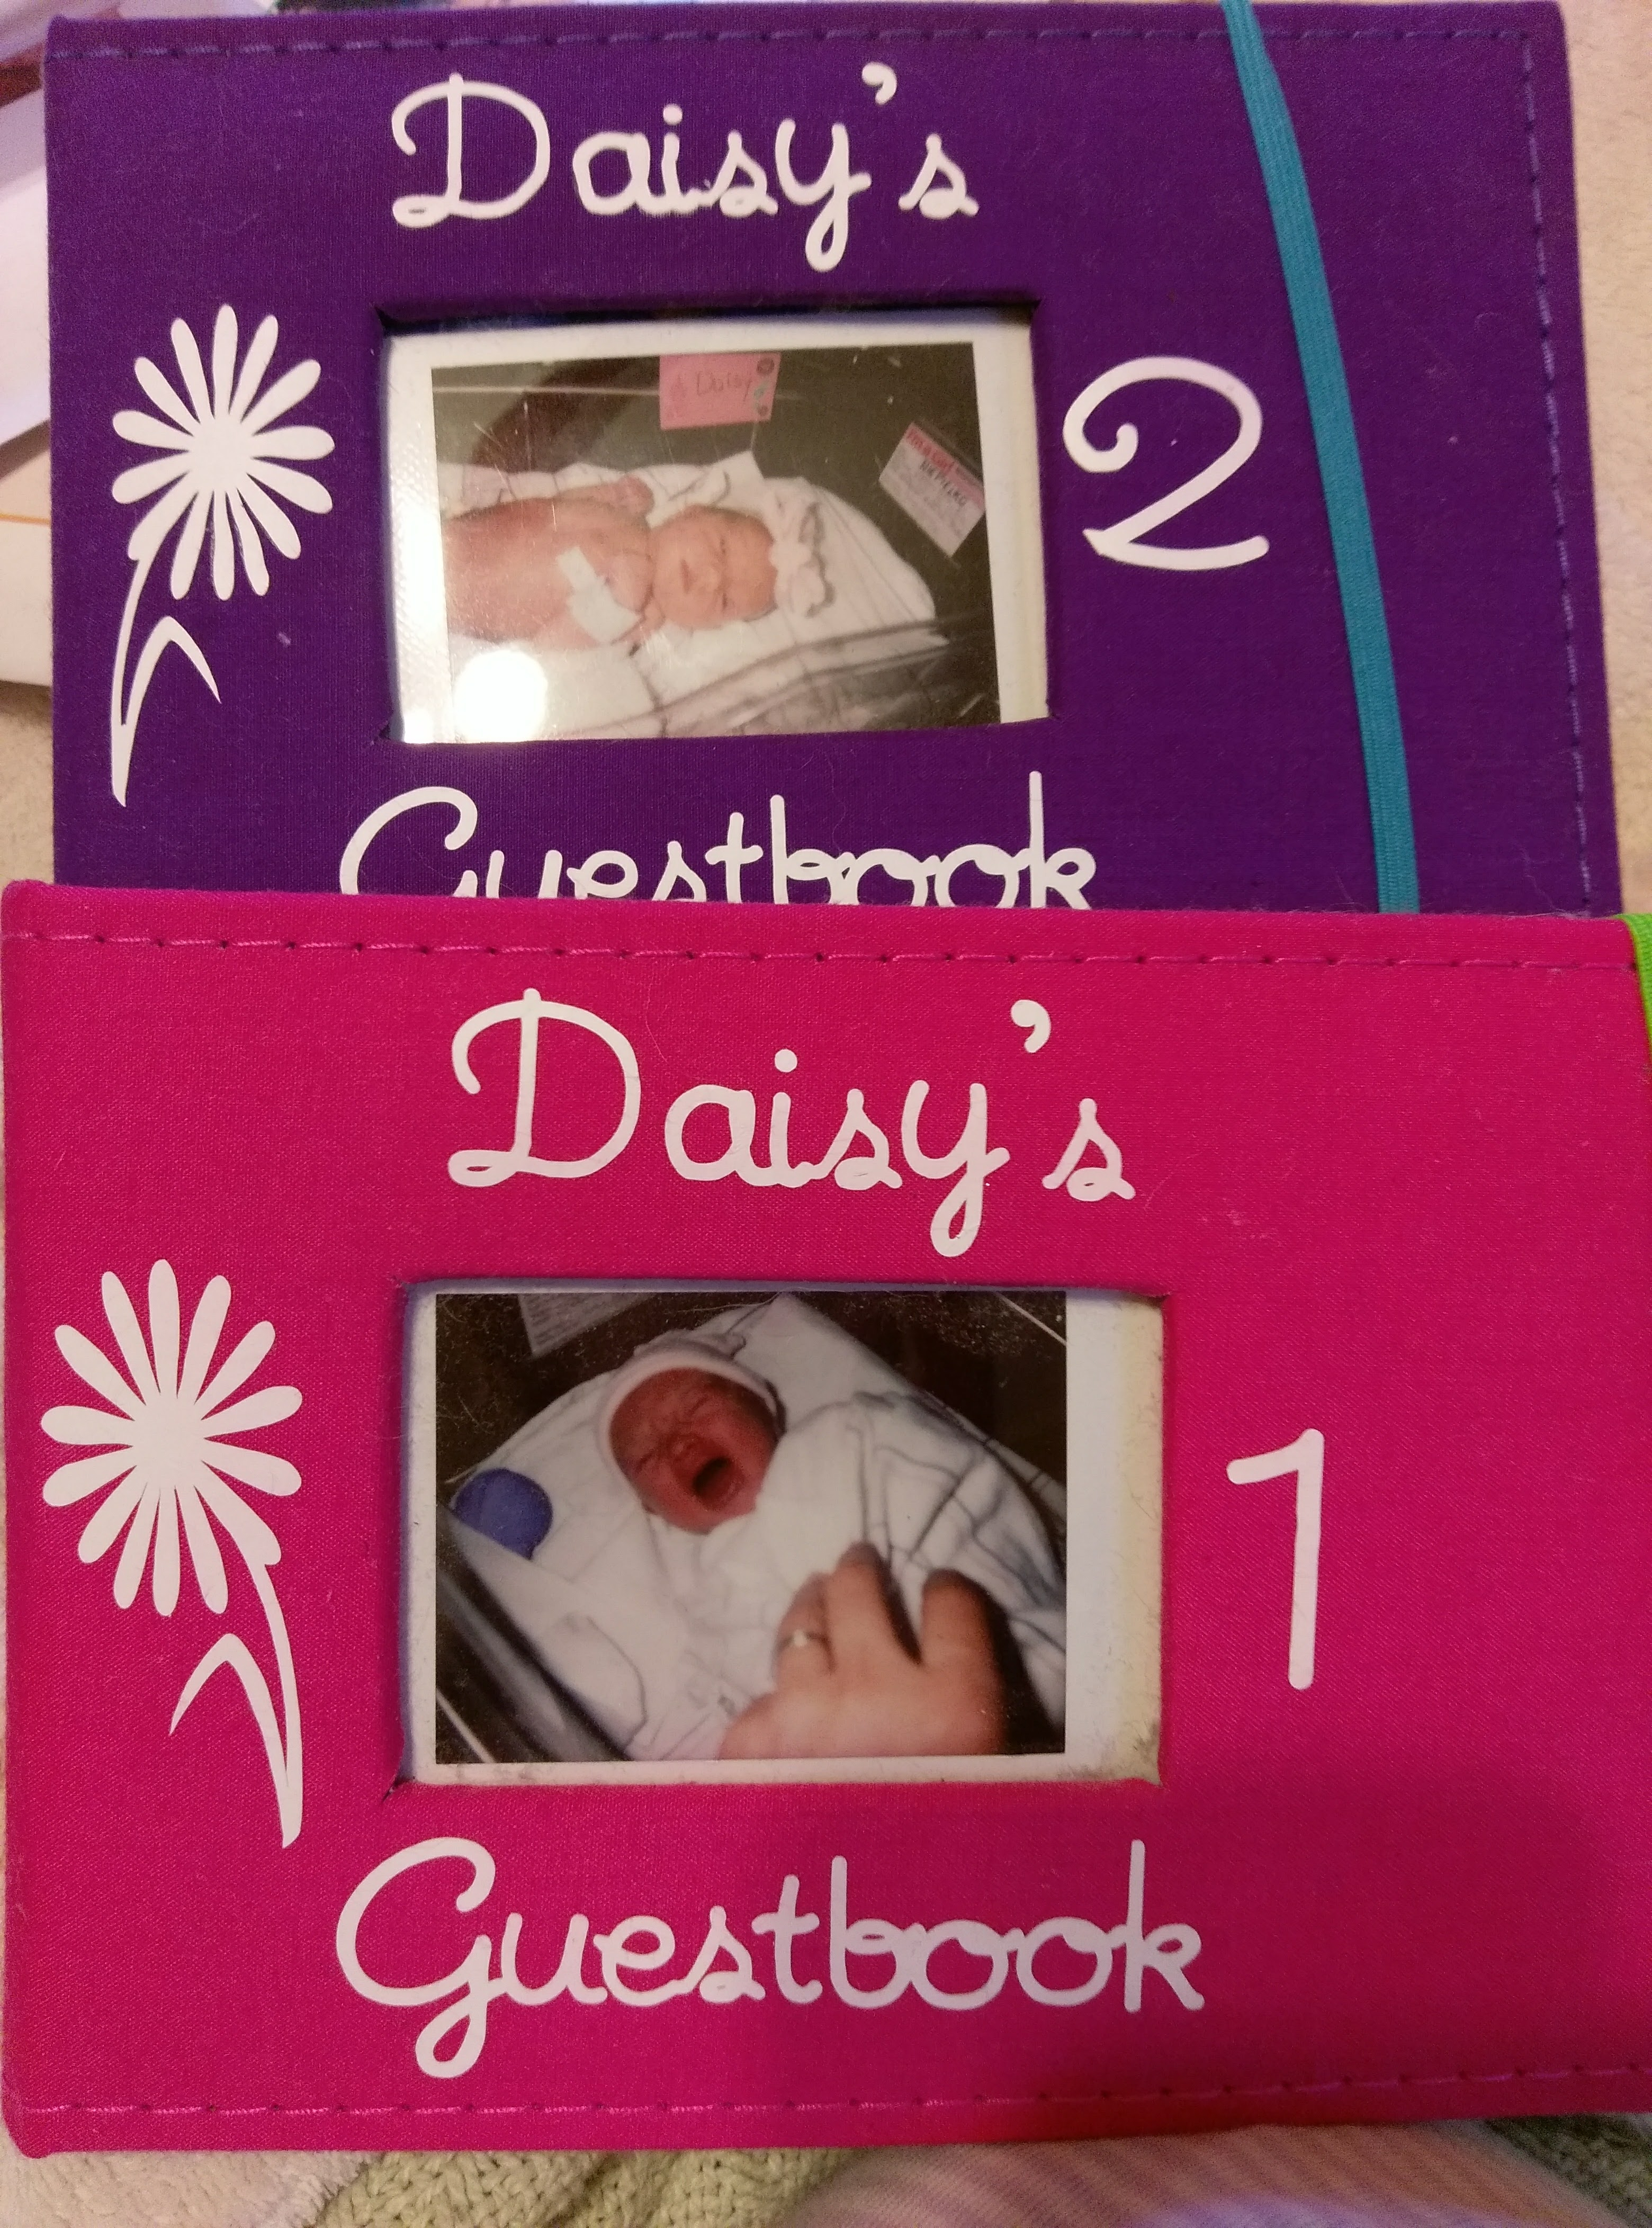 Daisy's Guestbooks